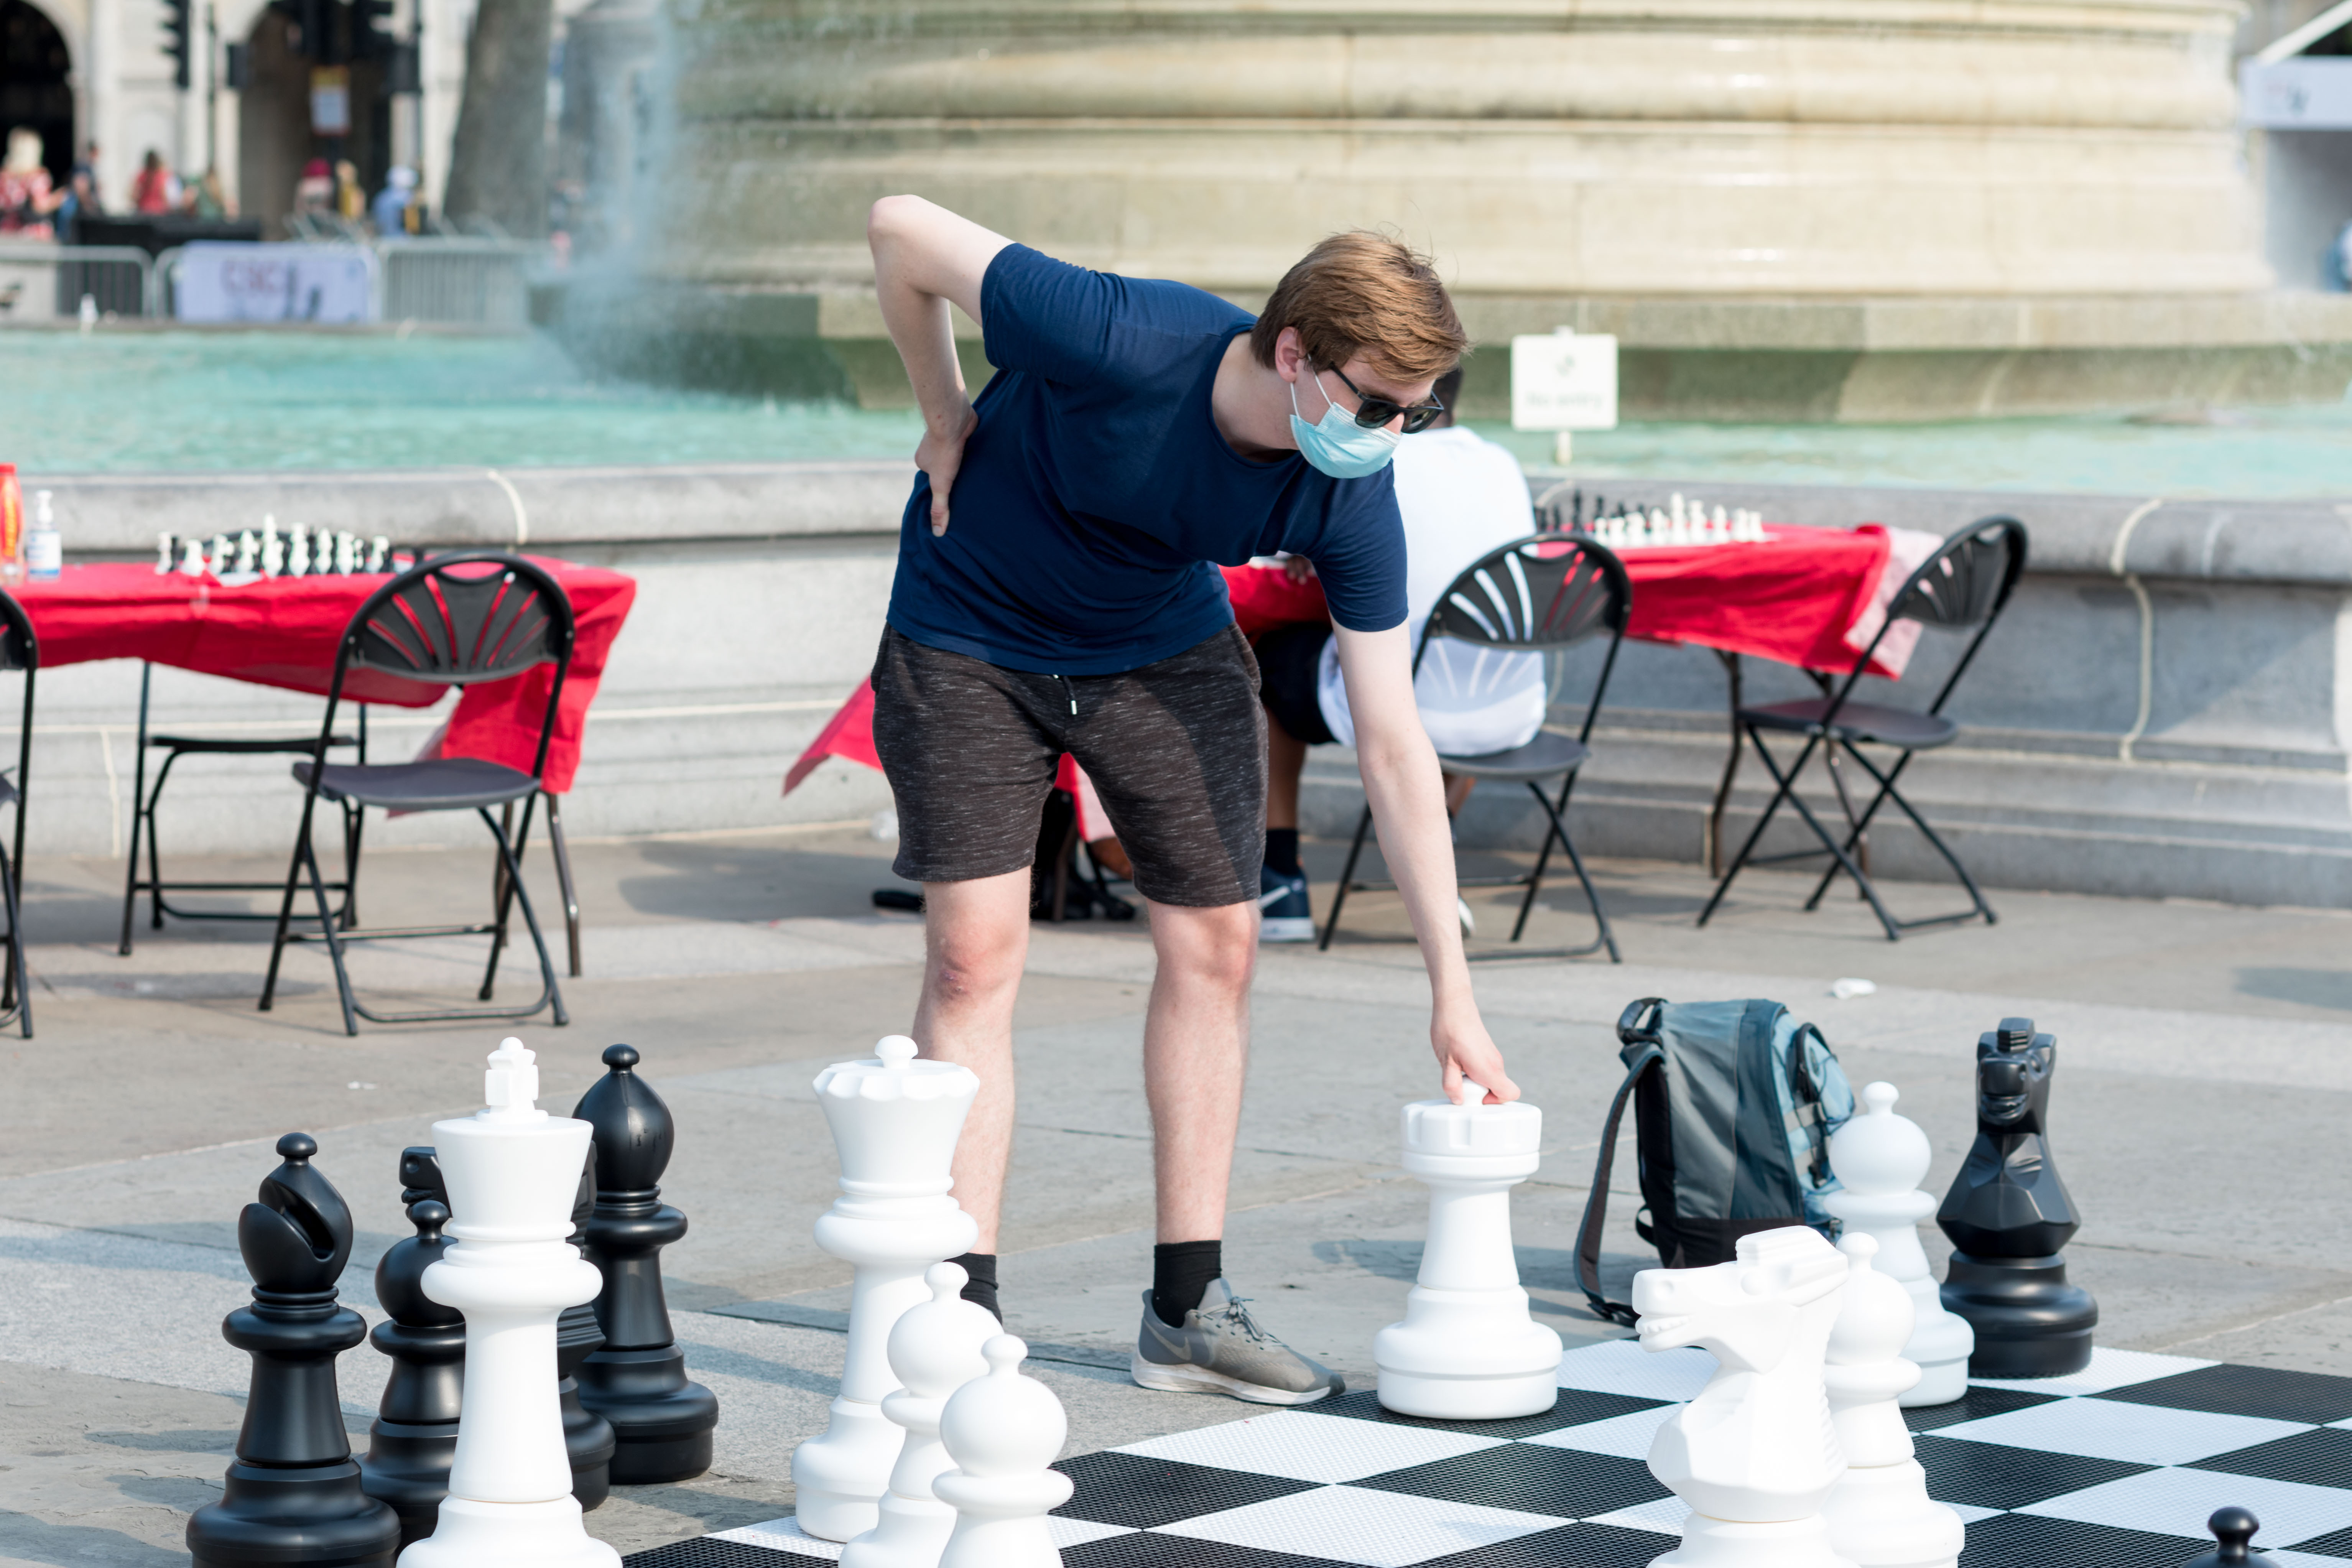 <p>A man seen taking his next move while playing on the life-sized chess set. The Chess Fest, held by Chess in Schools and Communities (CSC), supported by Mayor of London and XTX Markets, took place on the 18th of July at Trafalgar Square in London. Free chess lessons were offered from professional chess teachers and top UK players, and giant life-sized chessboards were set up for people to play on. The festival was held to promote the playing of chess as an intellectually stimulating activity. (Photo by Belinda Jiao / SOPA Images/Sipa USA)</p>